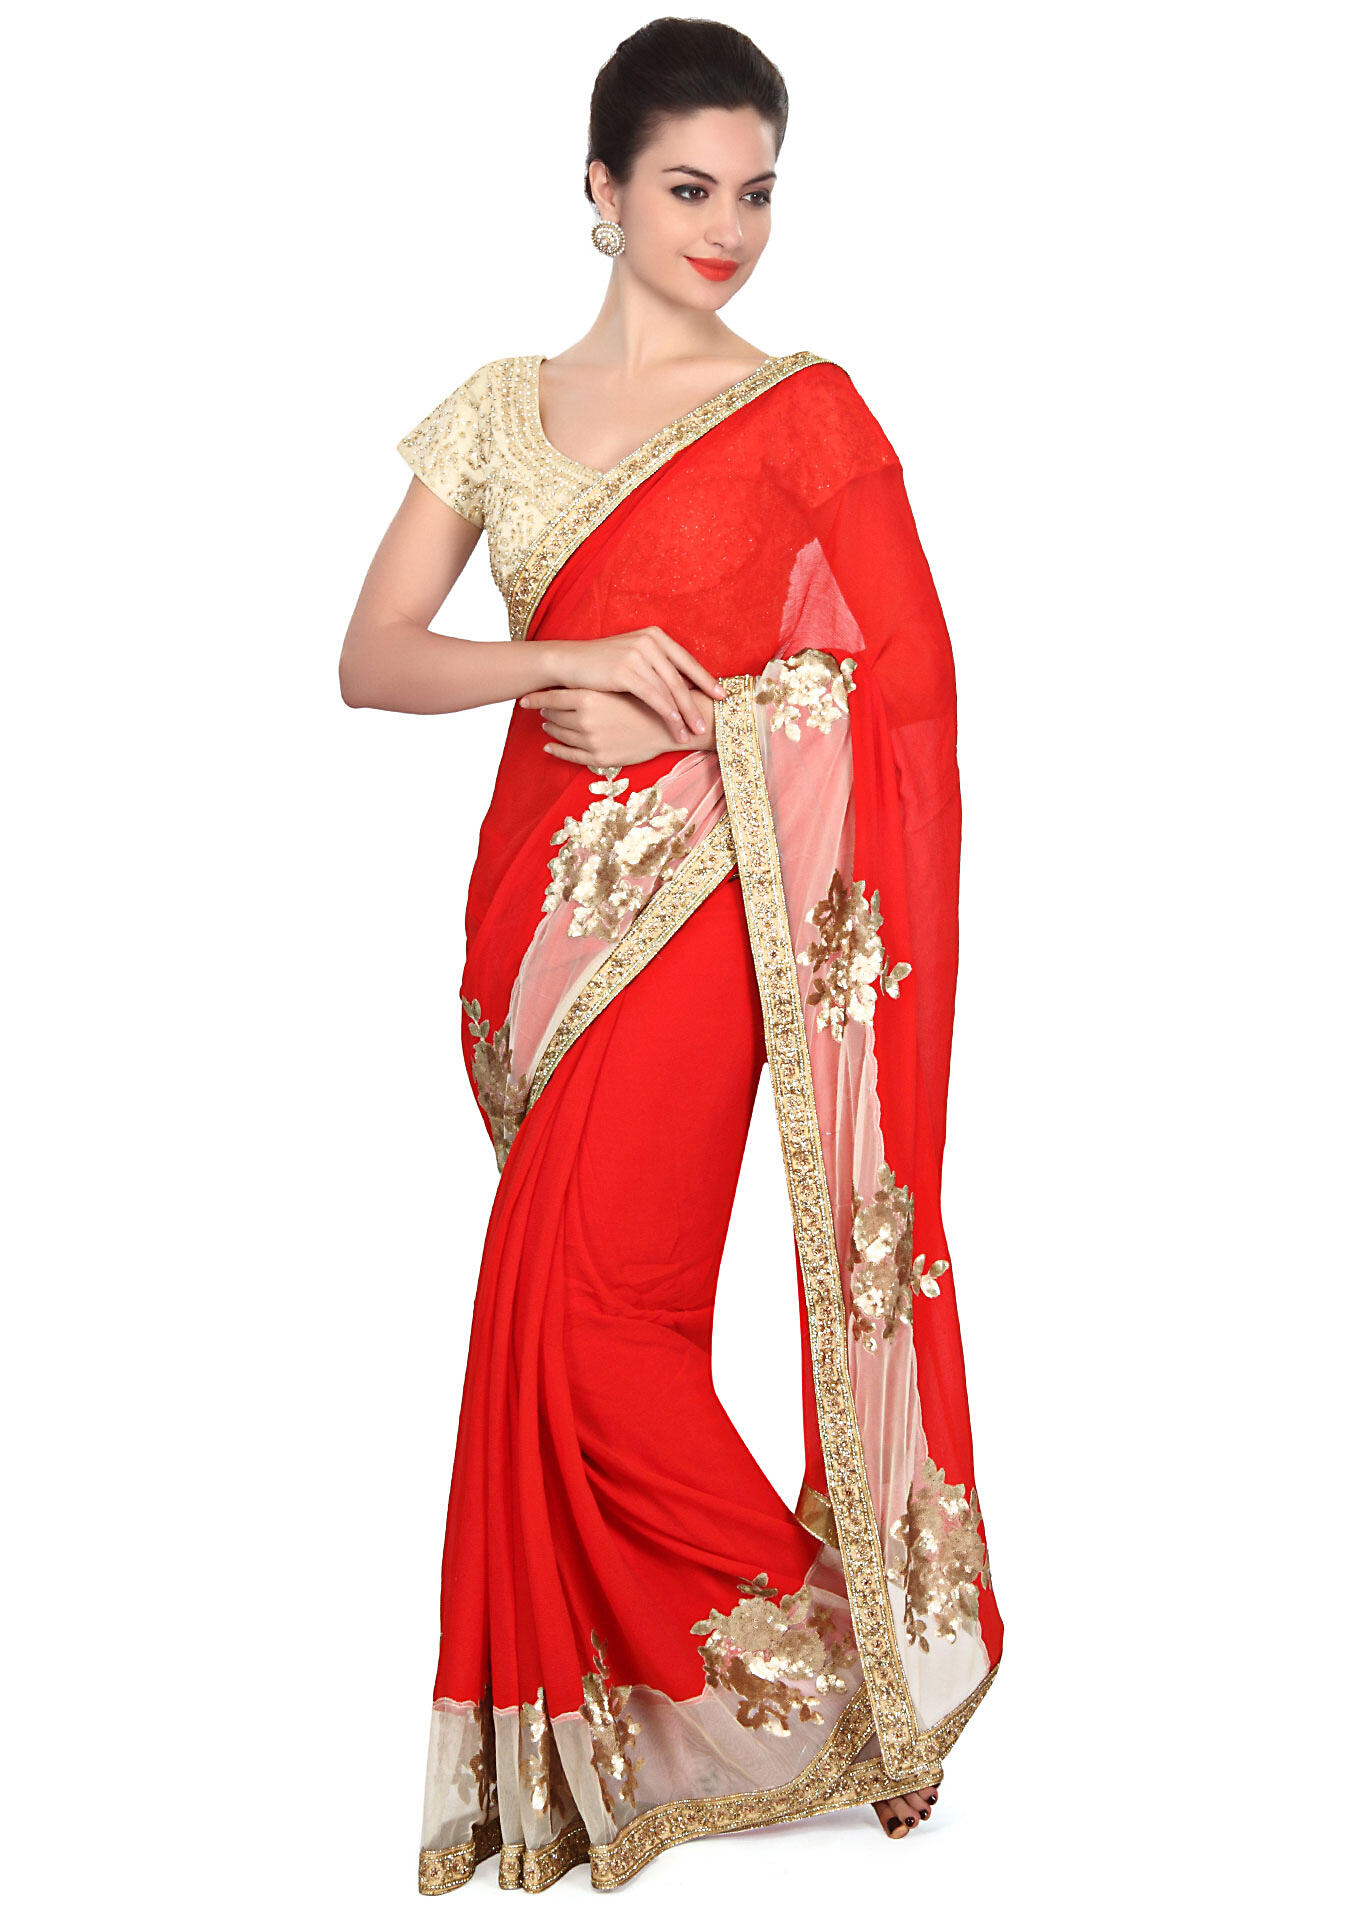 76dca7815856ce Red saree embellished in sequin embroidery only on KalkiMore Detail